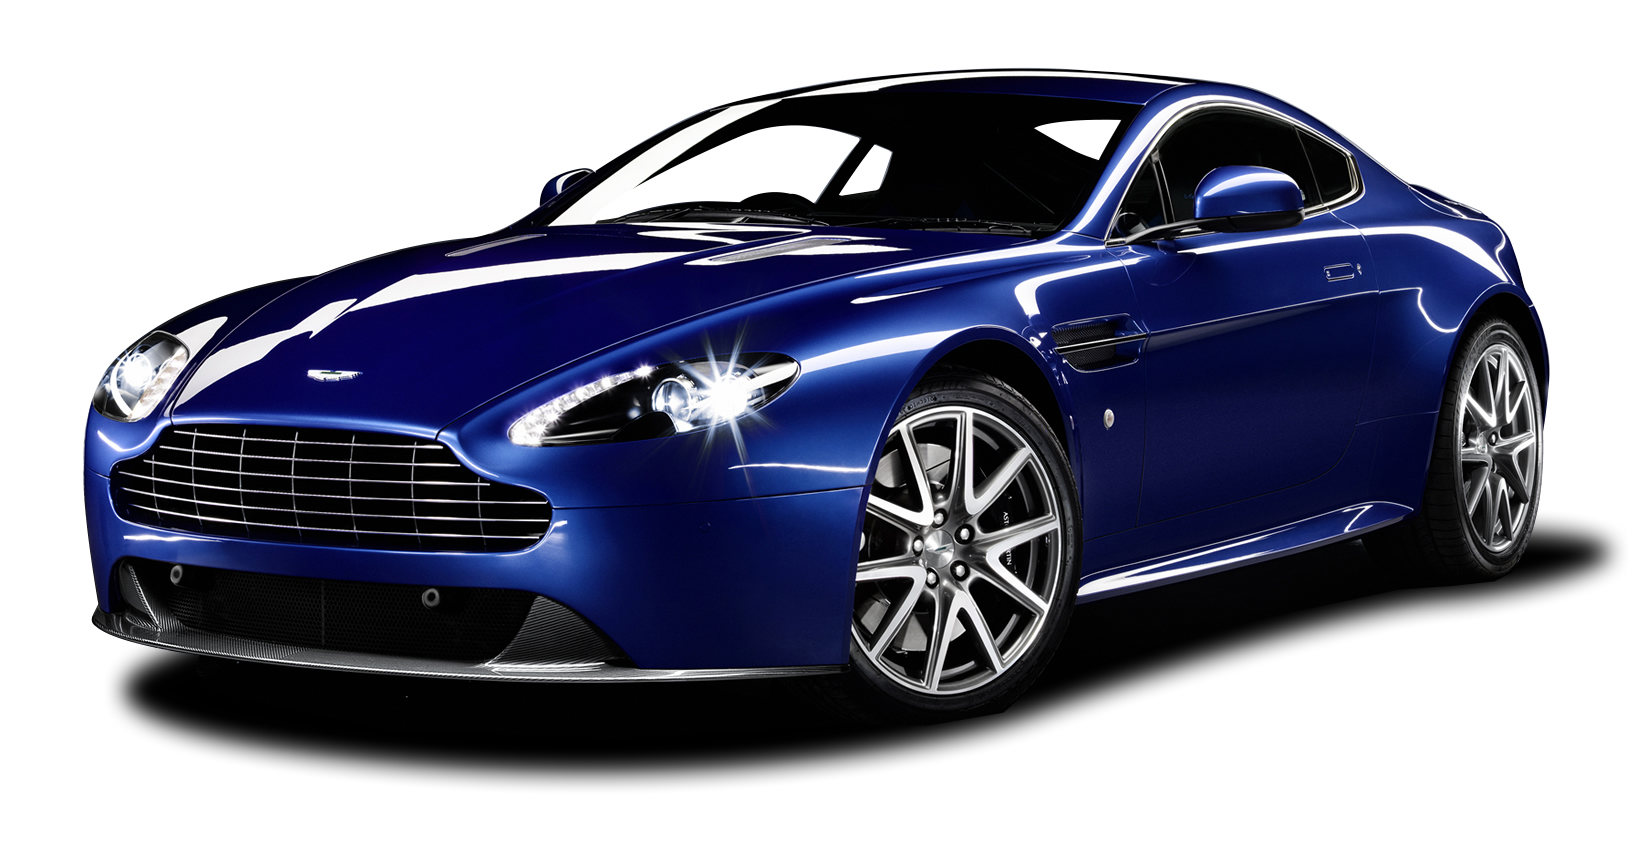 aston martin v8 vantage s overview. Black Bedroom Furniture Sets. Home Design Ideas